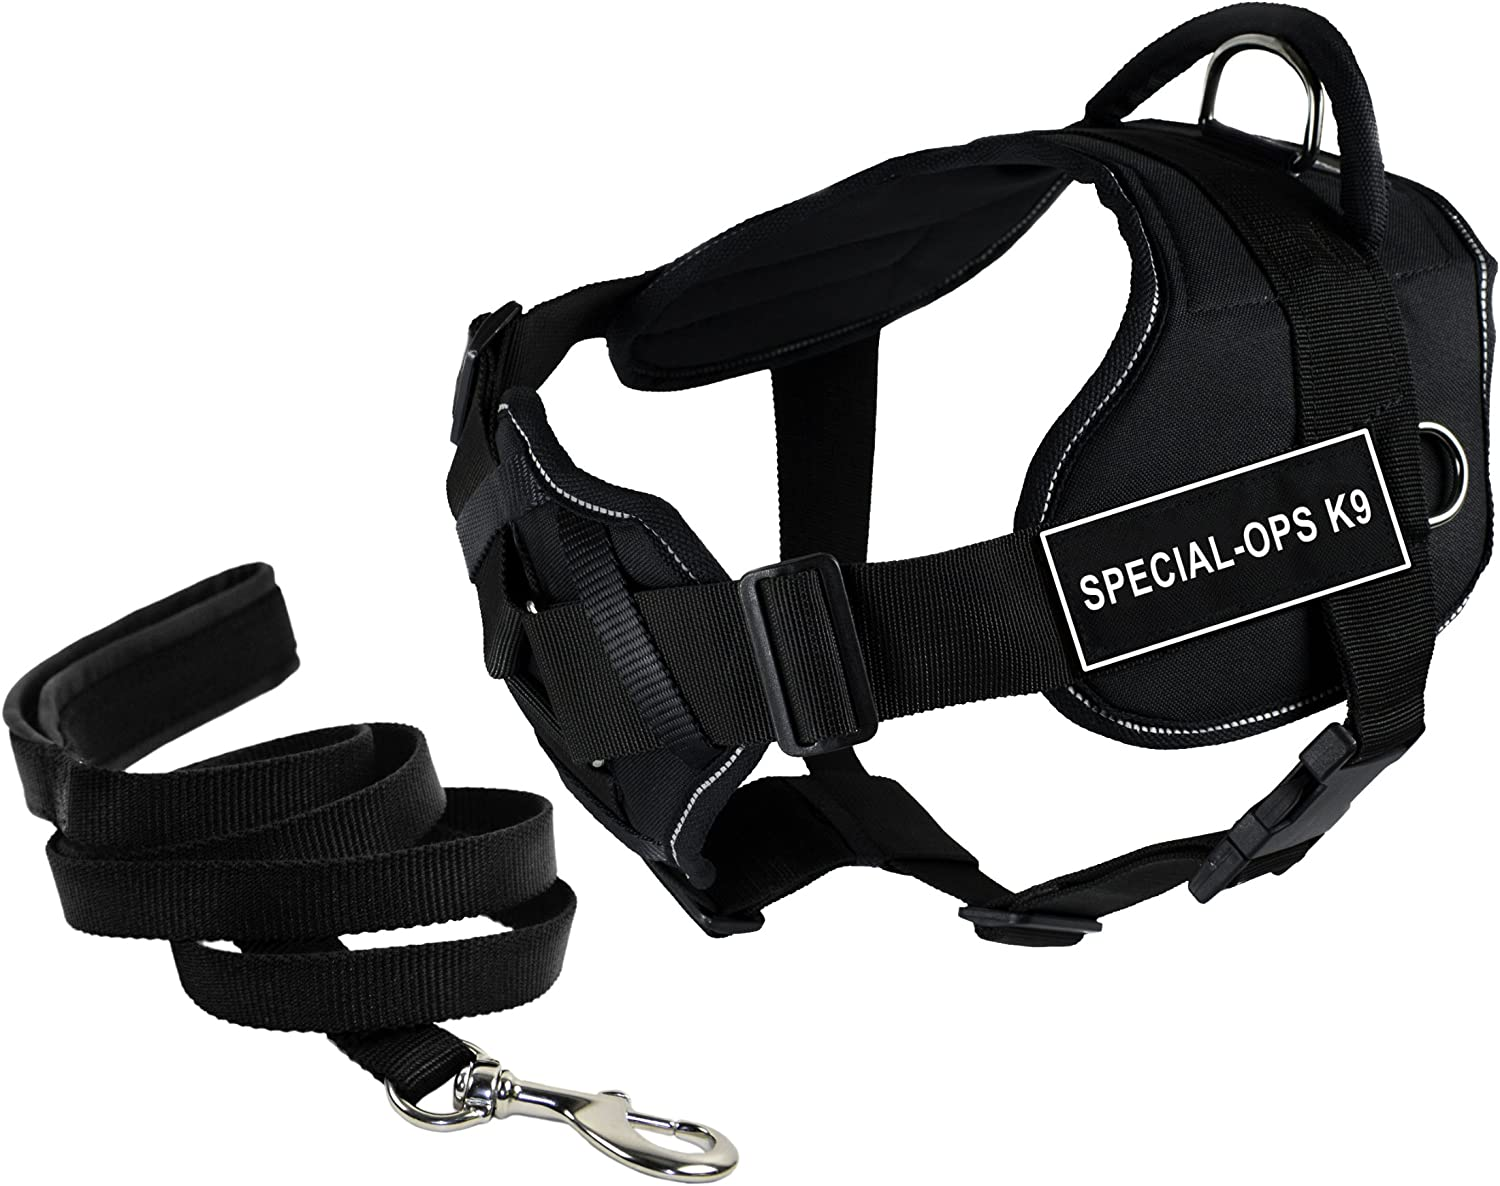 Dean & Tyler's DT Fun Chest Support SPECIALOPS K9 Harness with Reflective Trim, Small, and 6 ft Padded Puppy Leash.